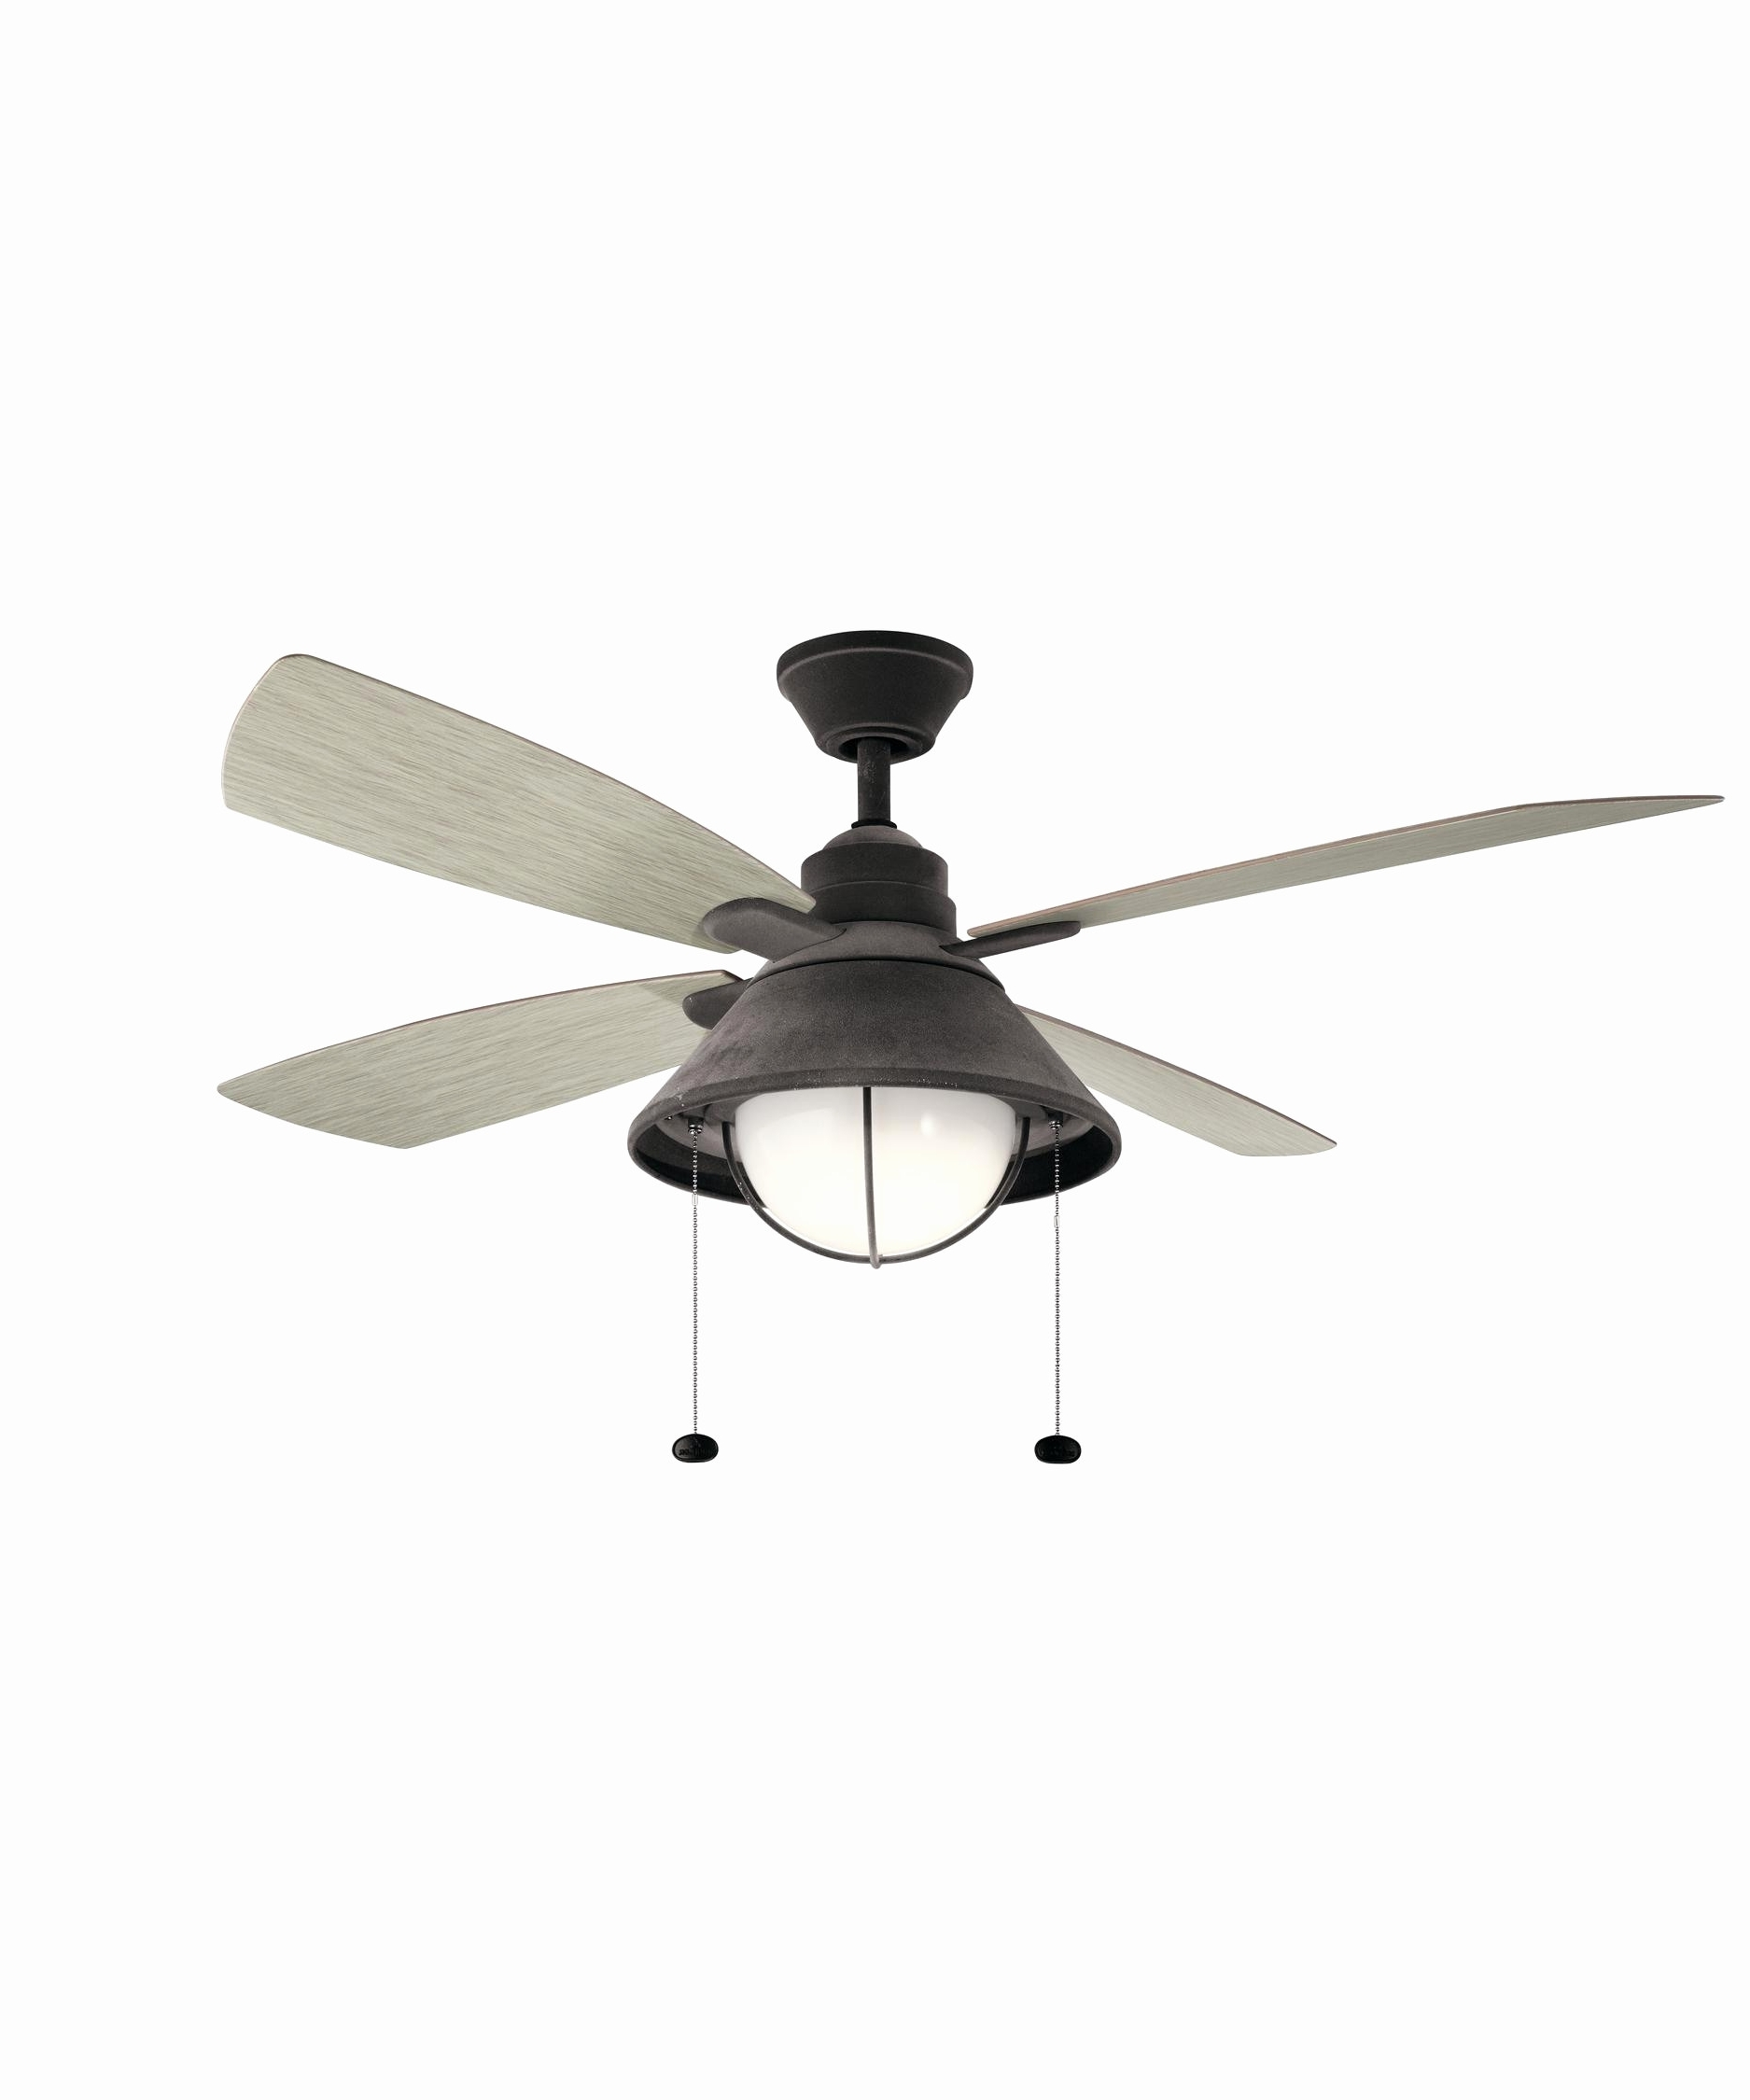 High Cfm Outdoor Ceiling Fan Inspirational Kichler Seaside 52 Inch 4 With Regard To 2019 Outdoor Ceiling Fans With High Cfm (View 8 of 20)